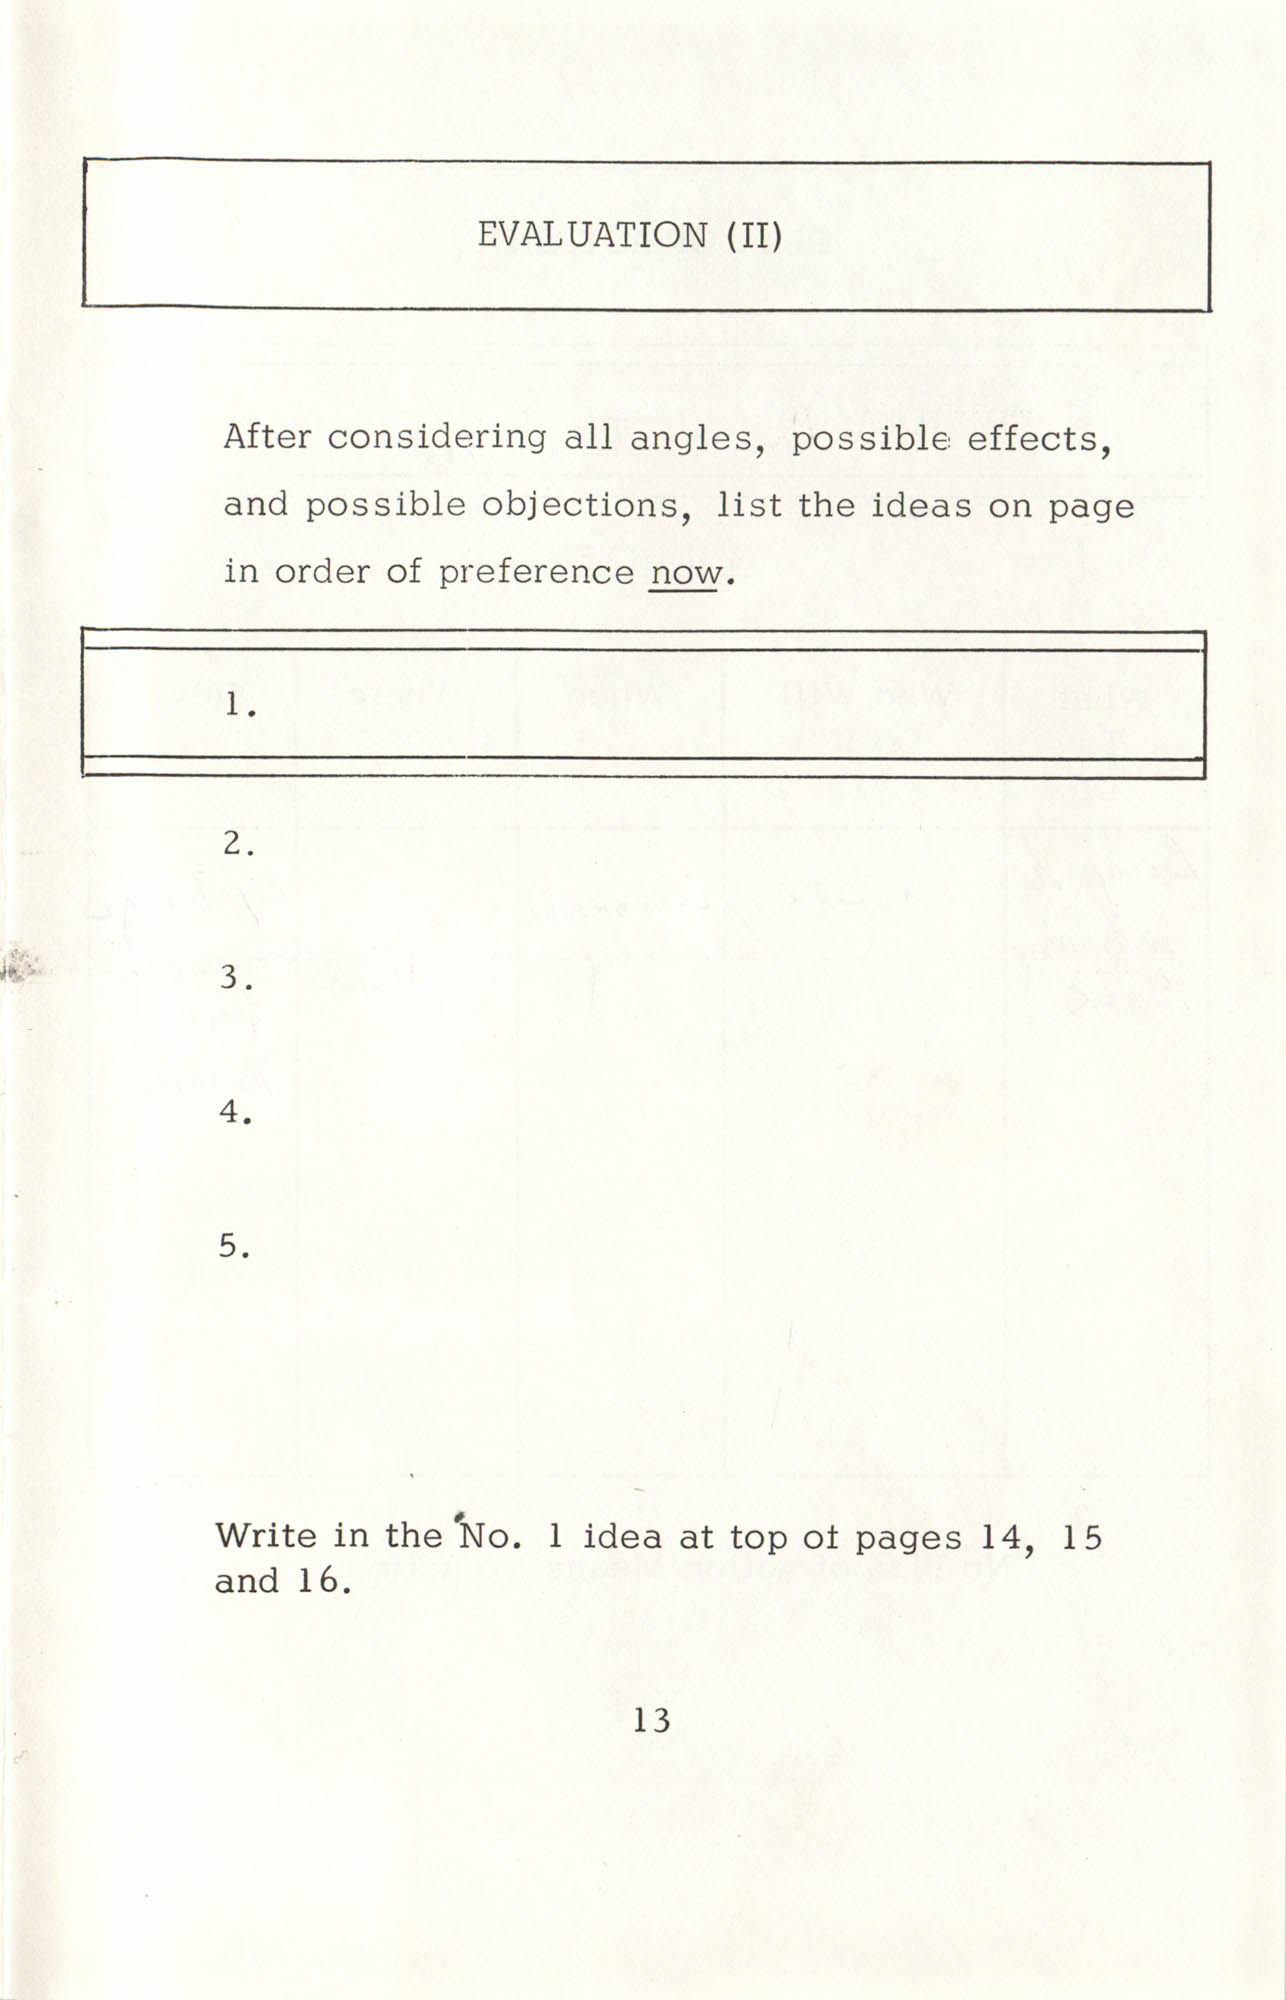 Creative Thinking Work Sheets, Page 13